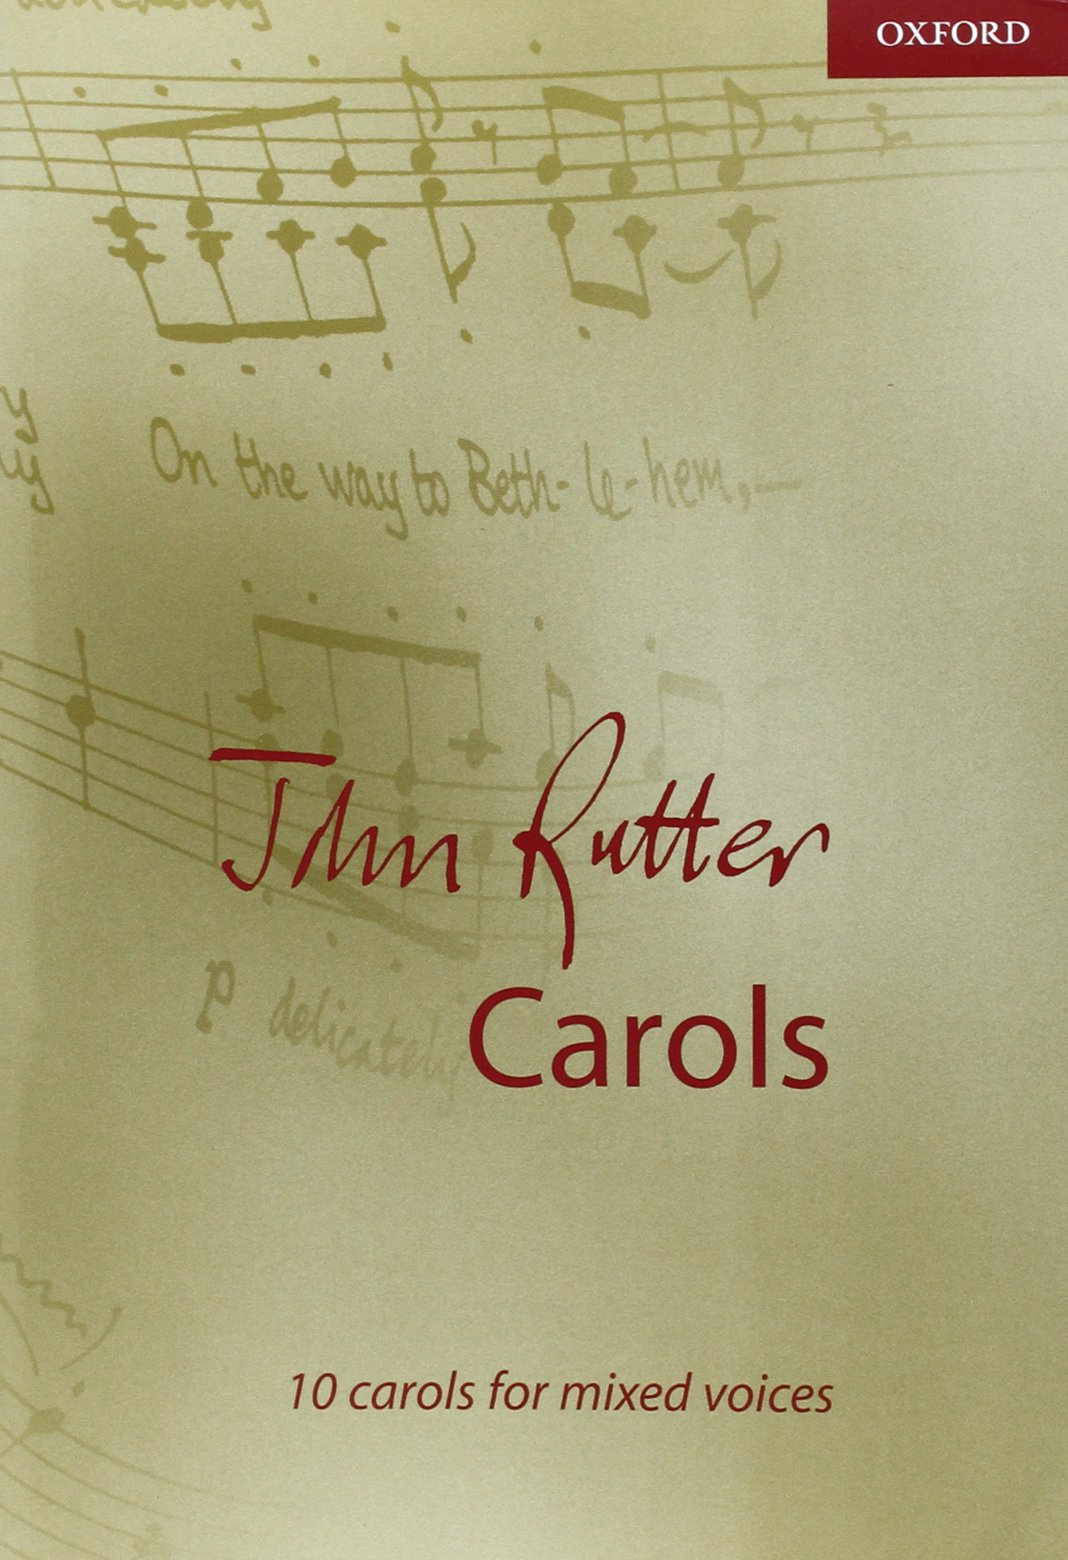 John Rutter Carols: 10 carols for mixed voices (Composer Carol Collections)